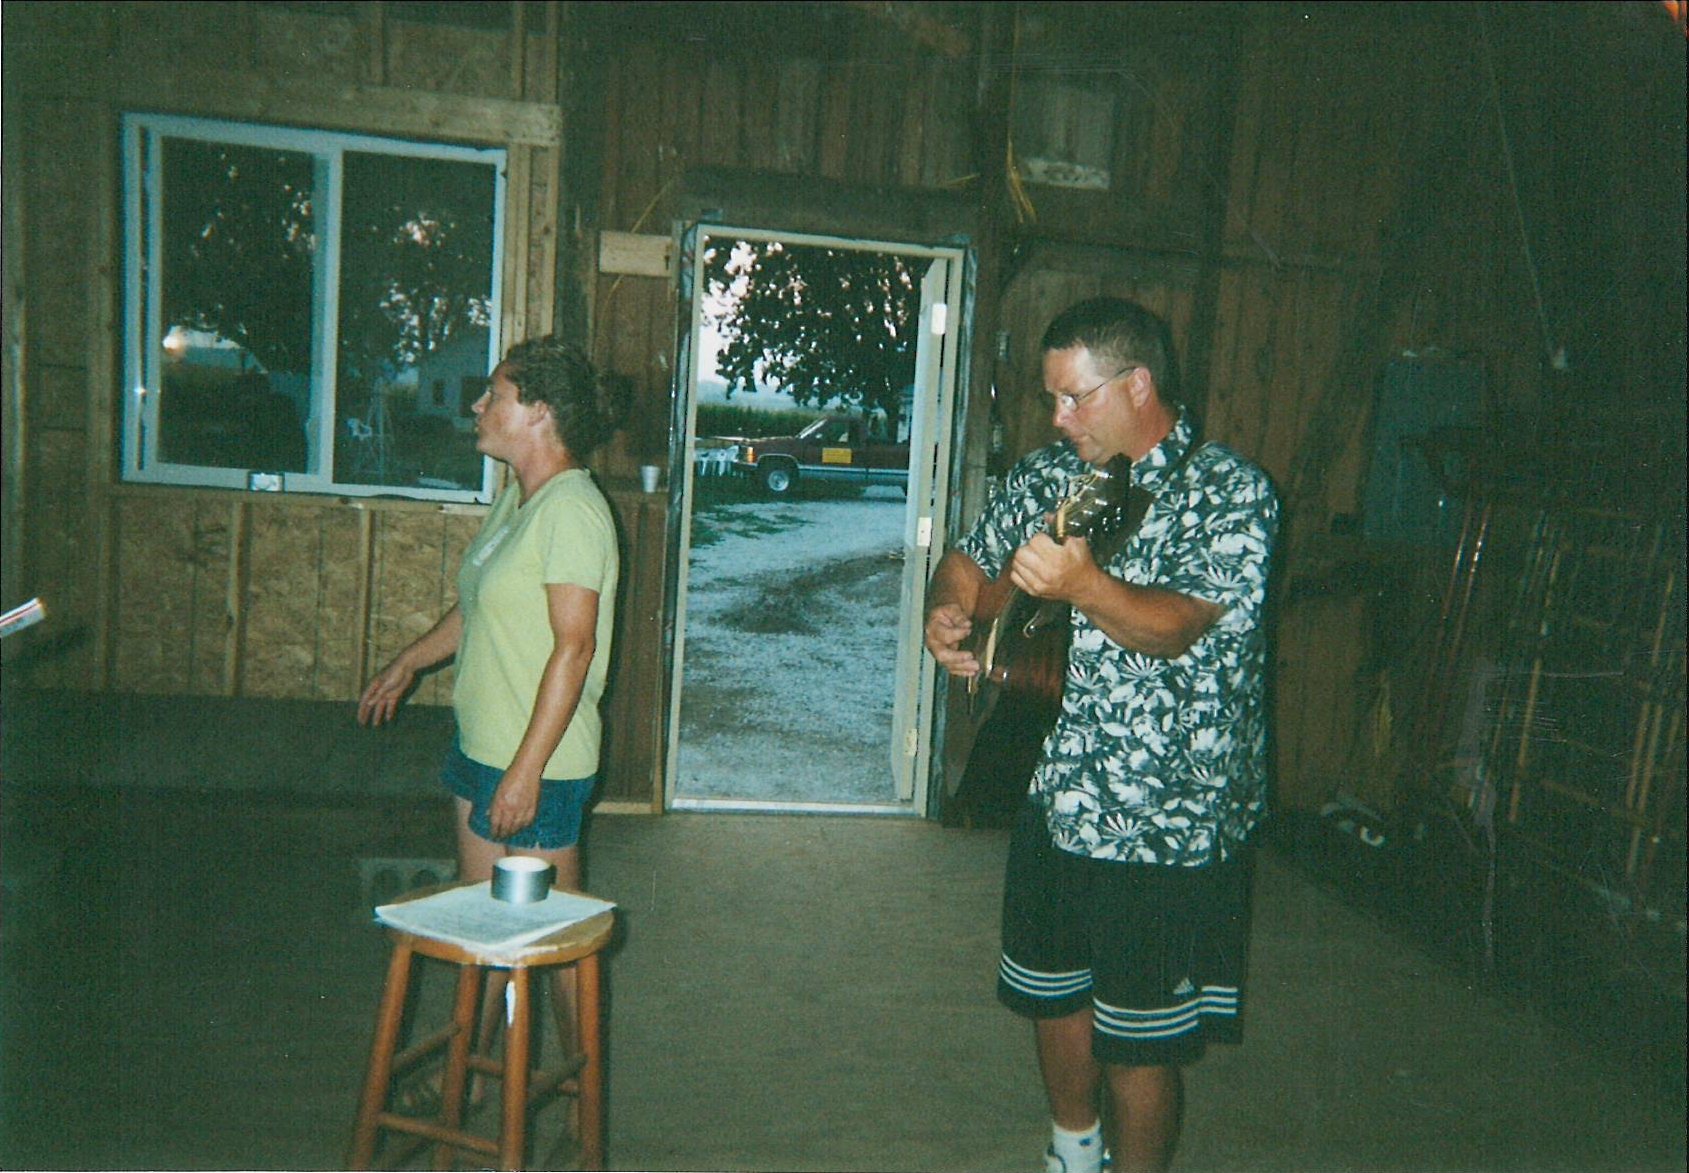 Mike Crippen, a master of the hammer and guitar. He spent many hours at Bethany Farm on the barn and other projects.